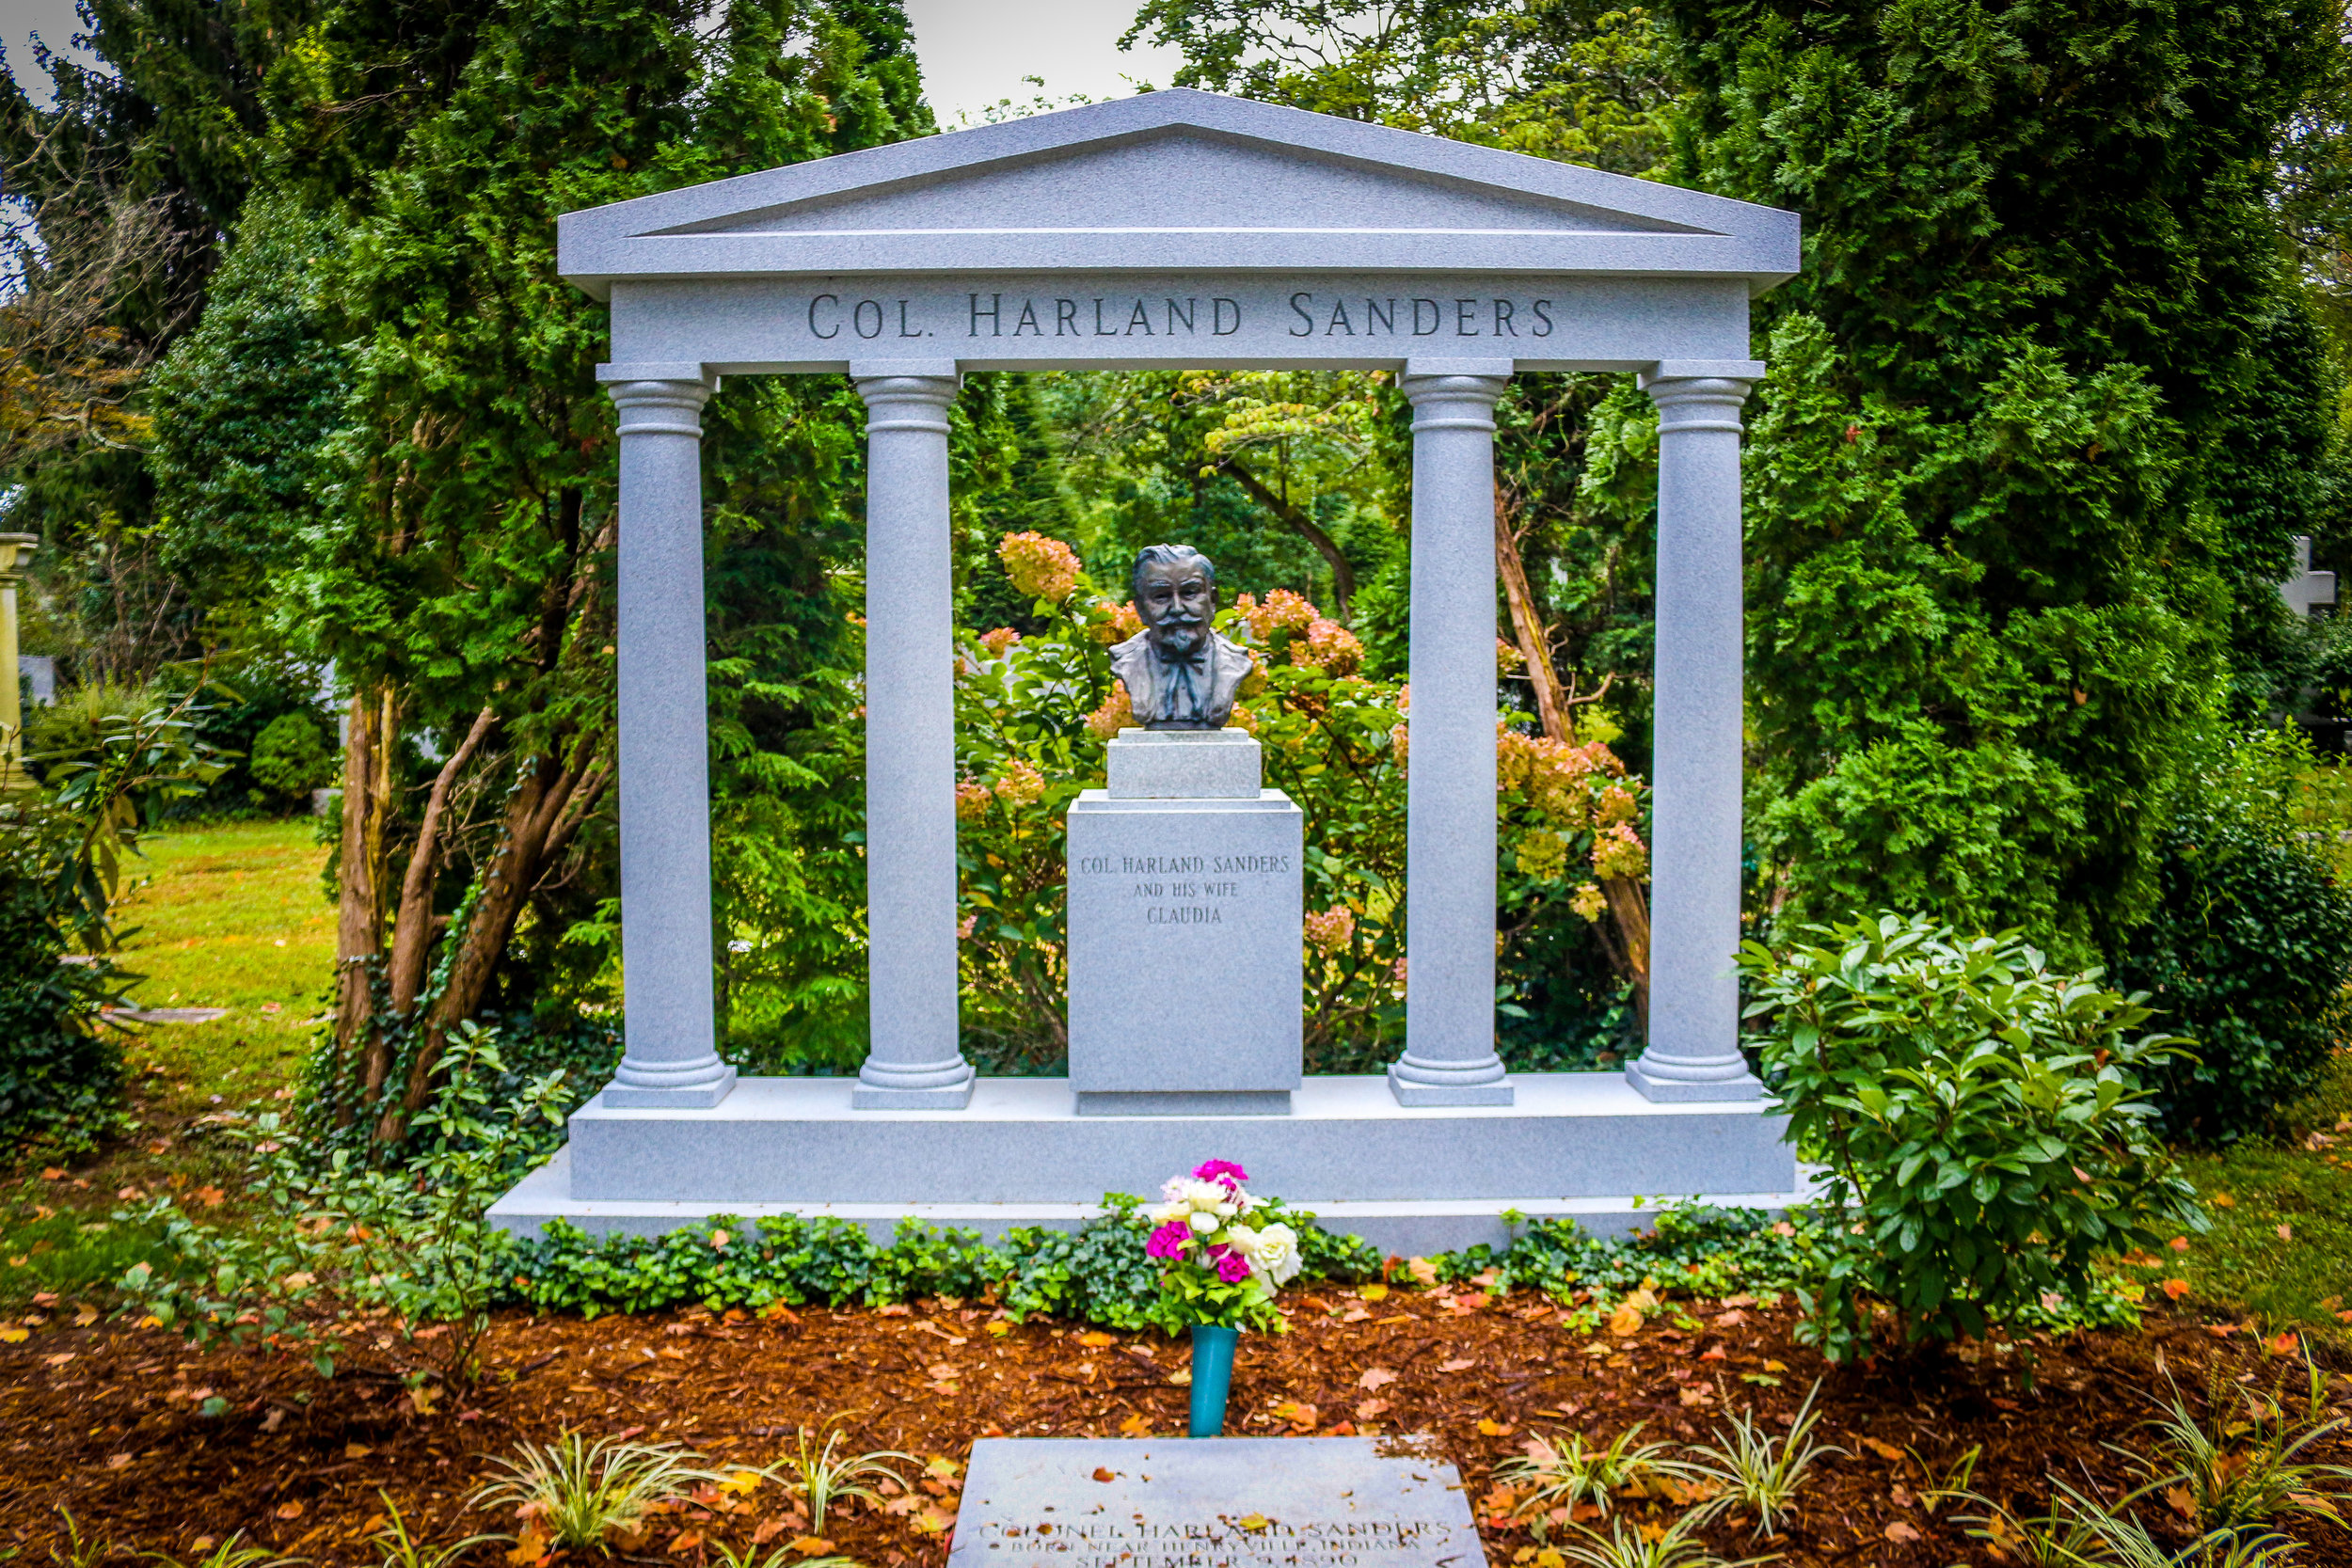 Colonel Sanders' Final Resting Place in Cave Hill Cemetery in Louisville, Kentucky